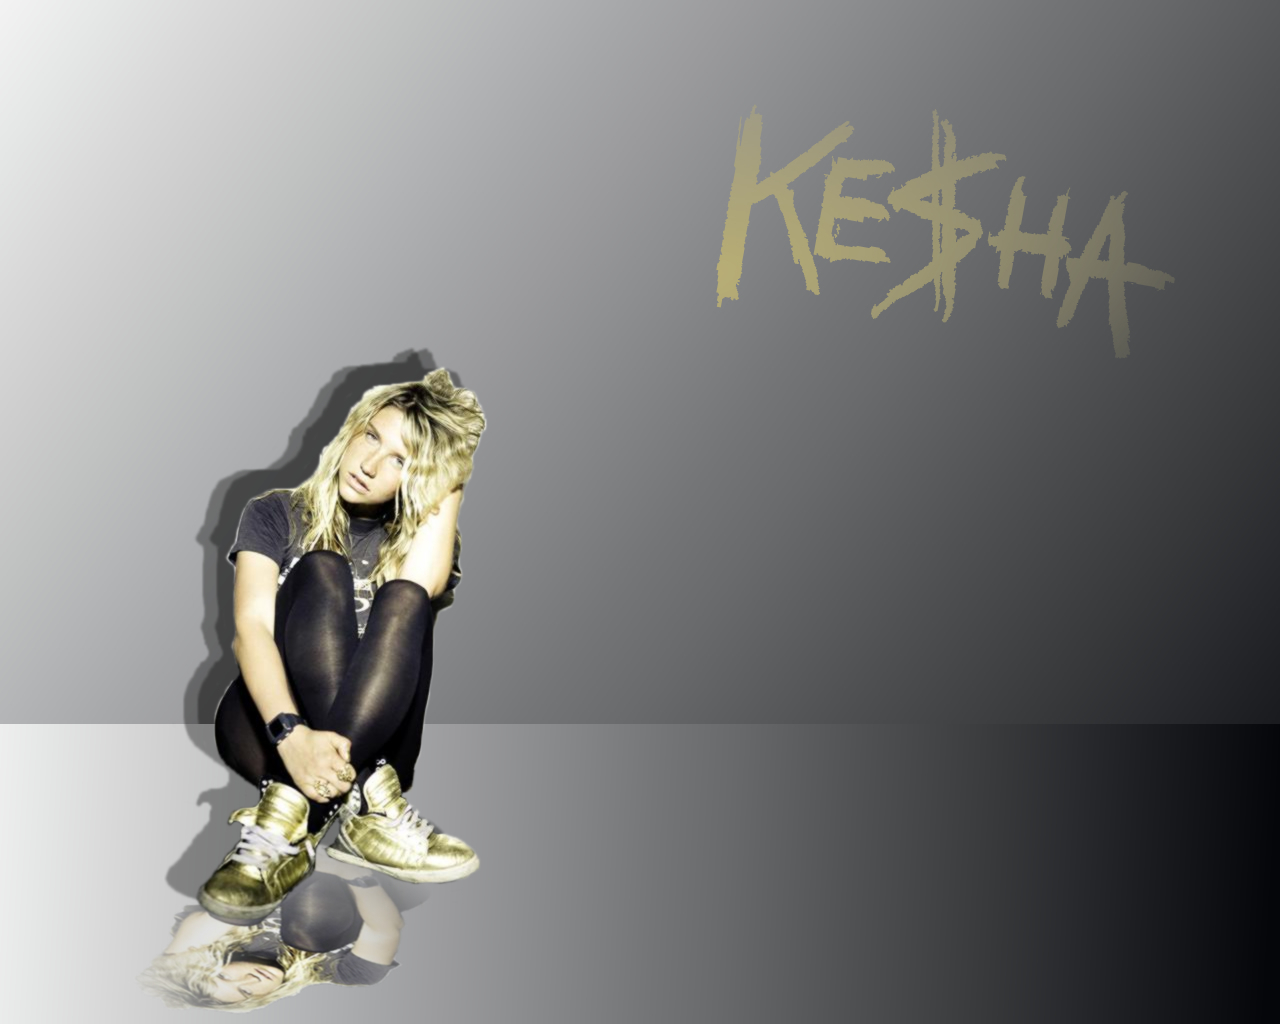 Beauty Kesha Wallpaper Full HD Pictures 1280x1024